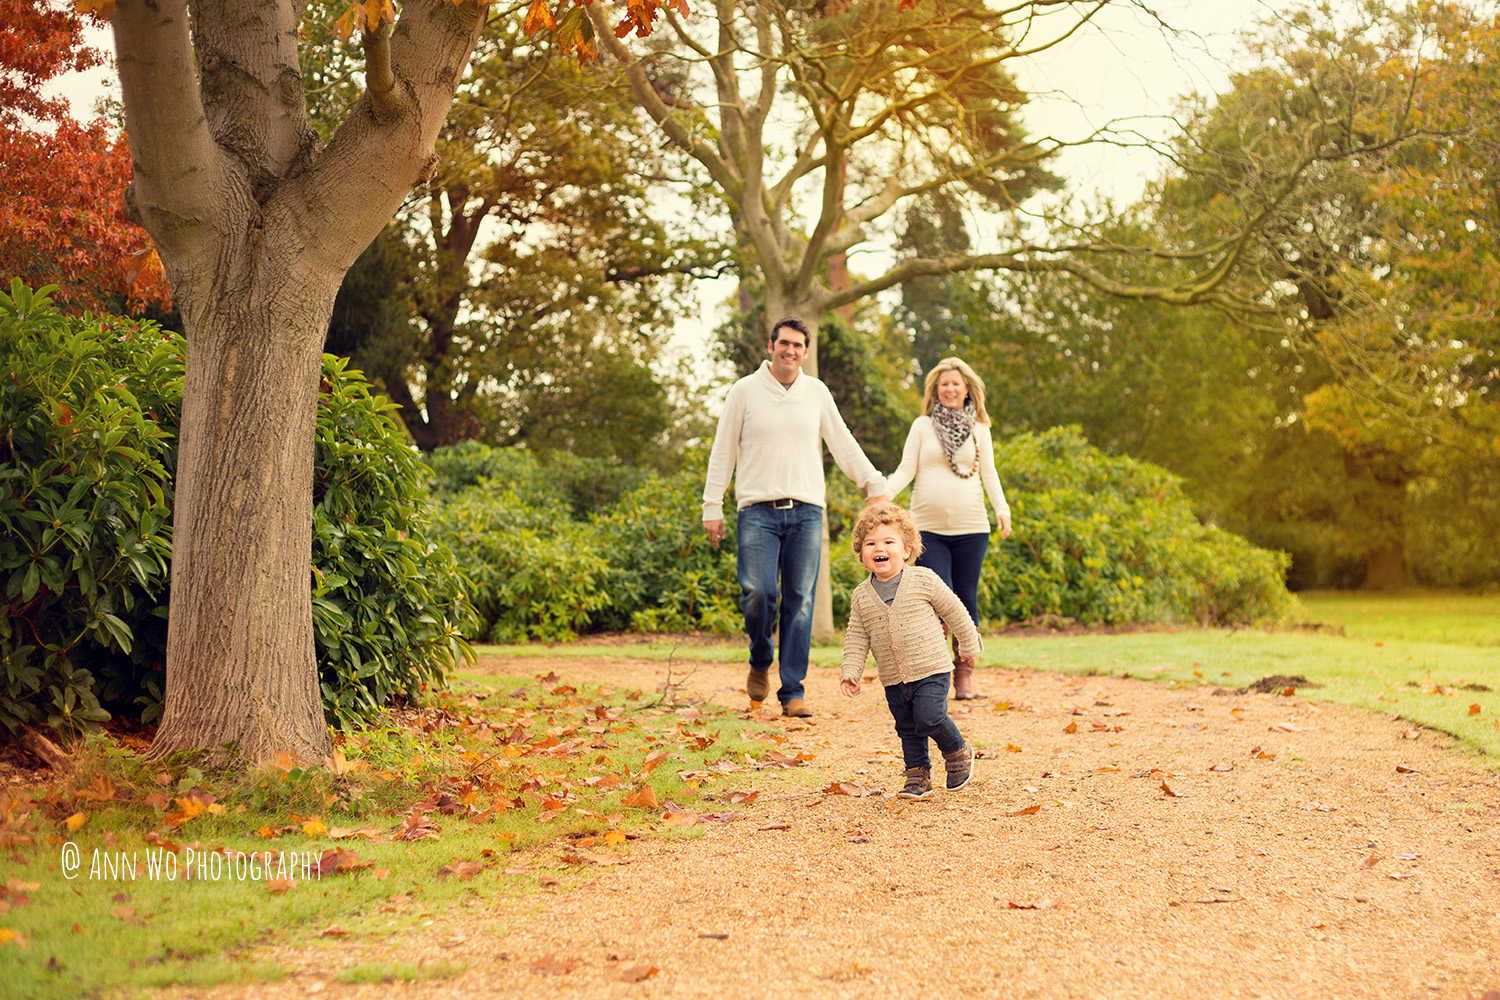 ann-wo-baby-photographer-windsor-berkshire-outdoor-family-photo-session2.jpg